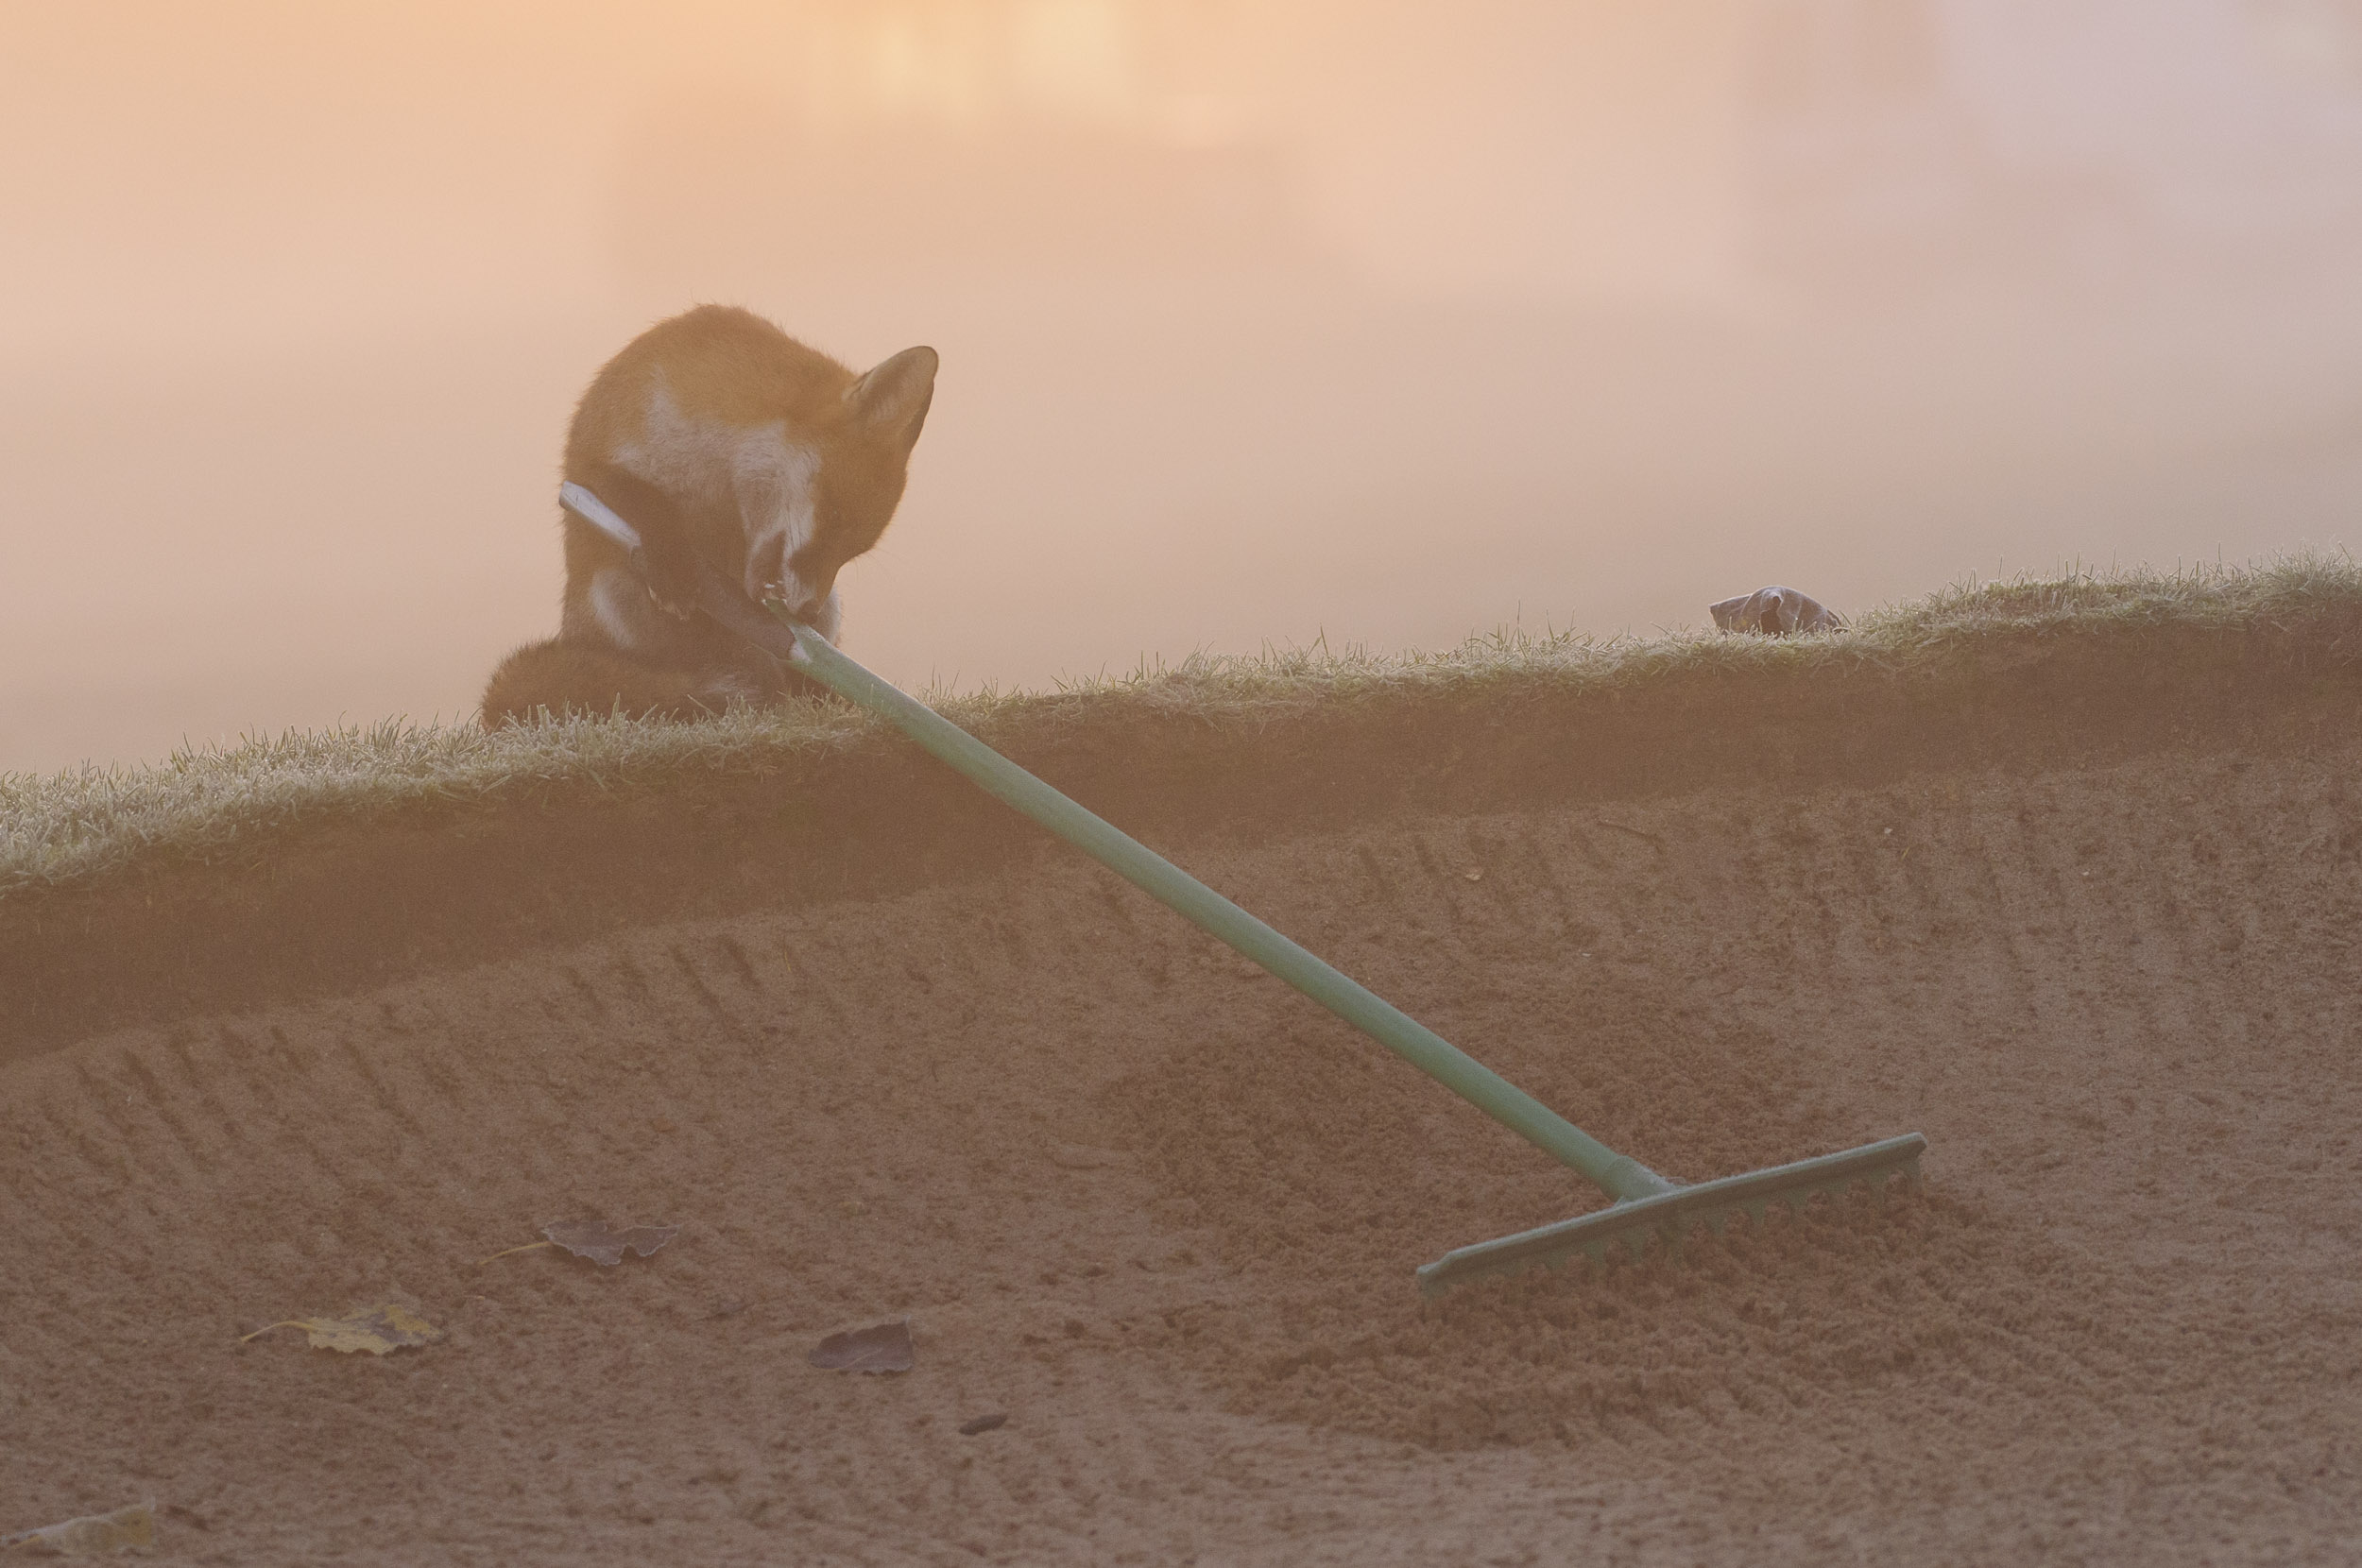 Red Fox (Vulpes vulpes), gnawing at the handle of a bunker rake on a golf course, London, 11/12